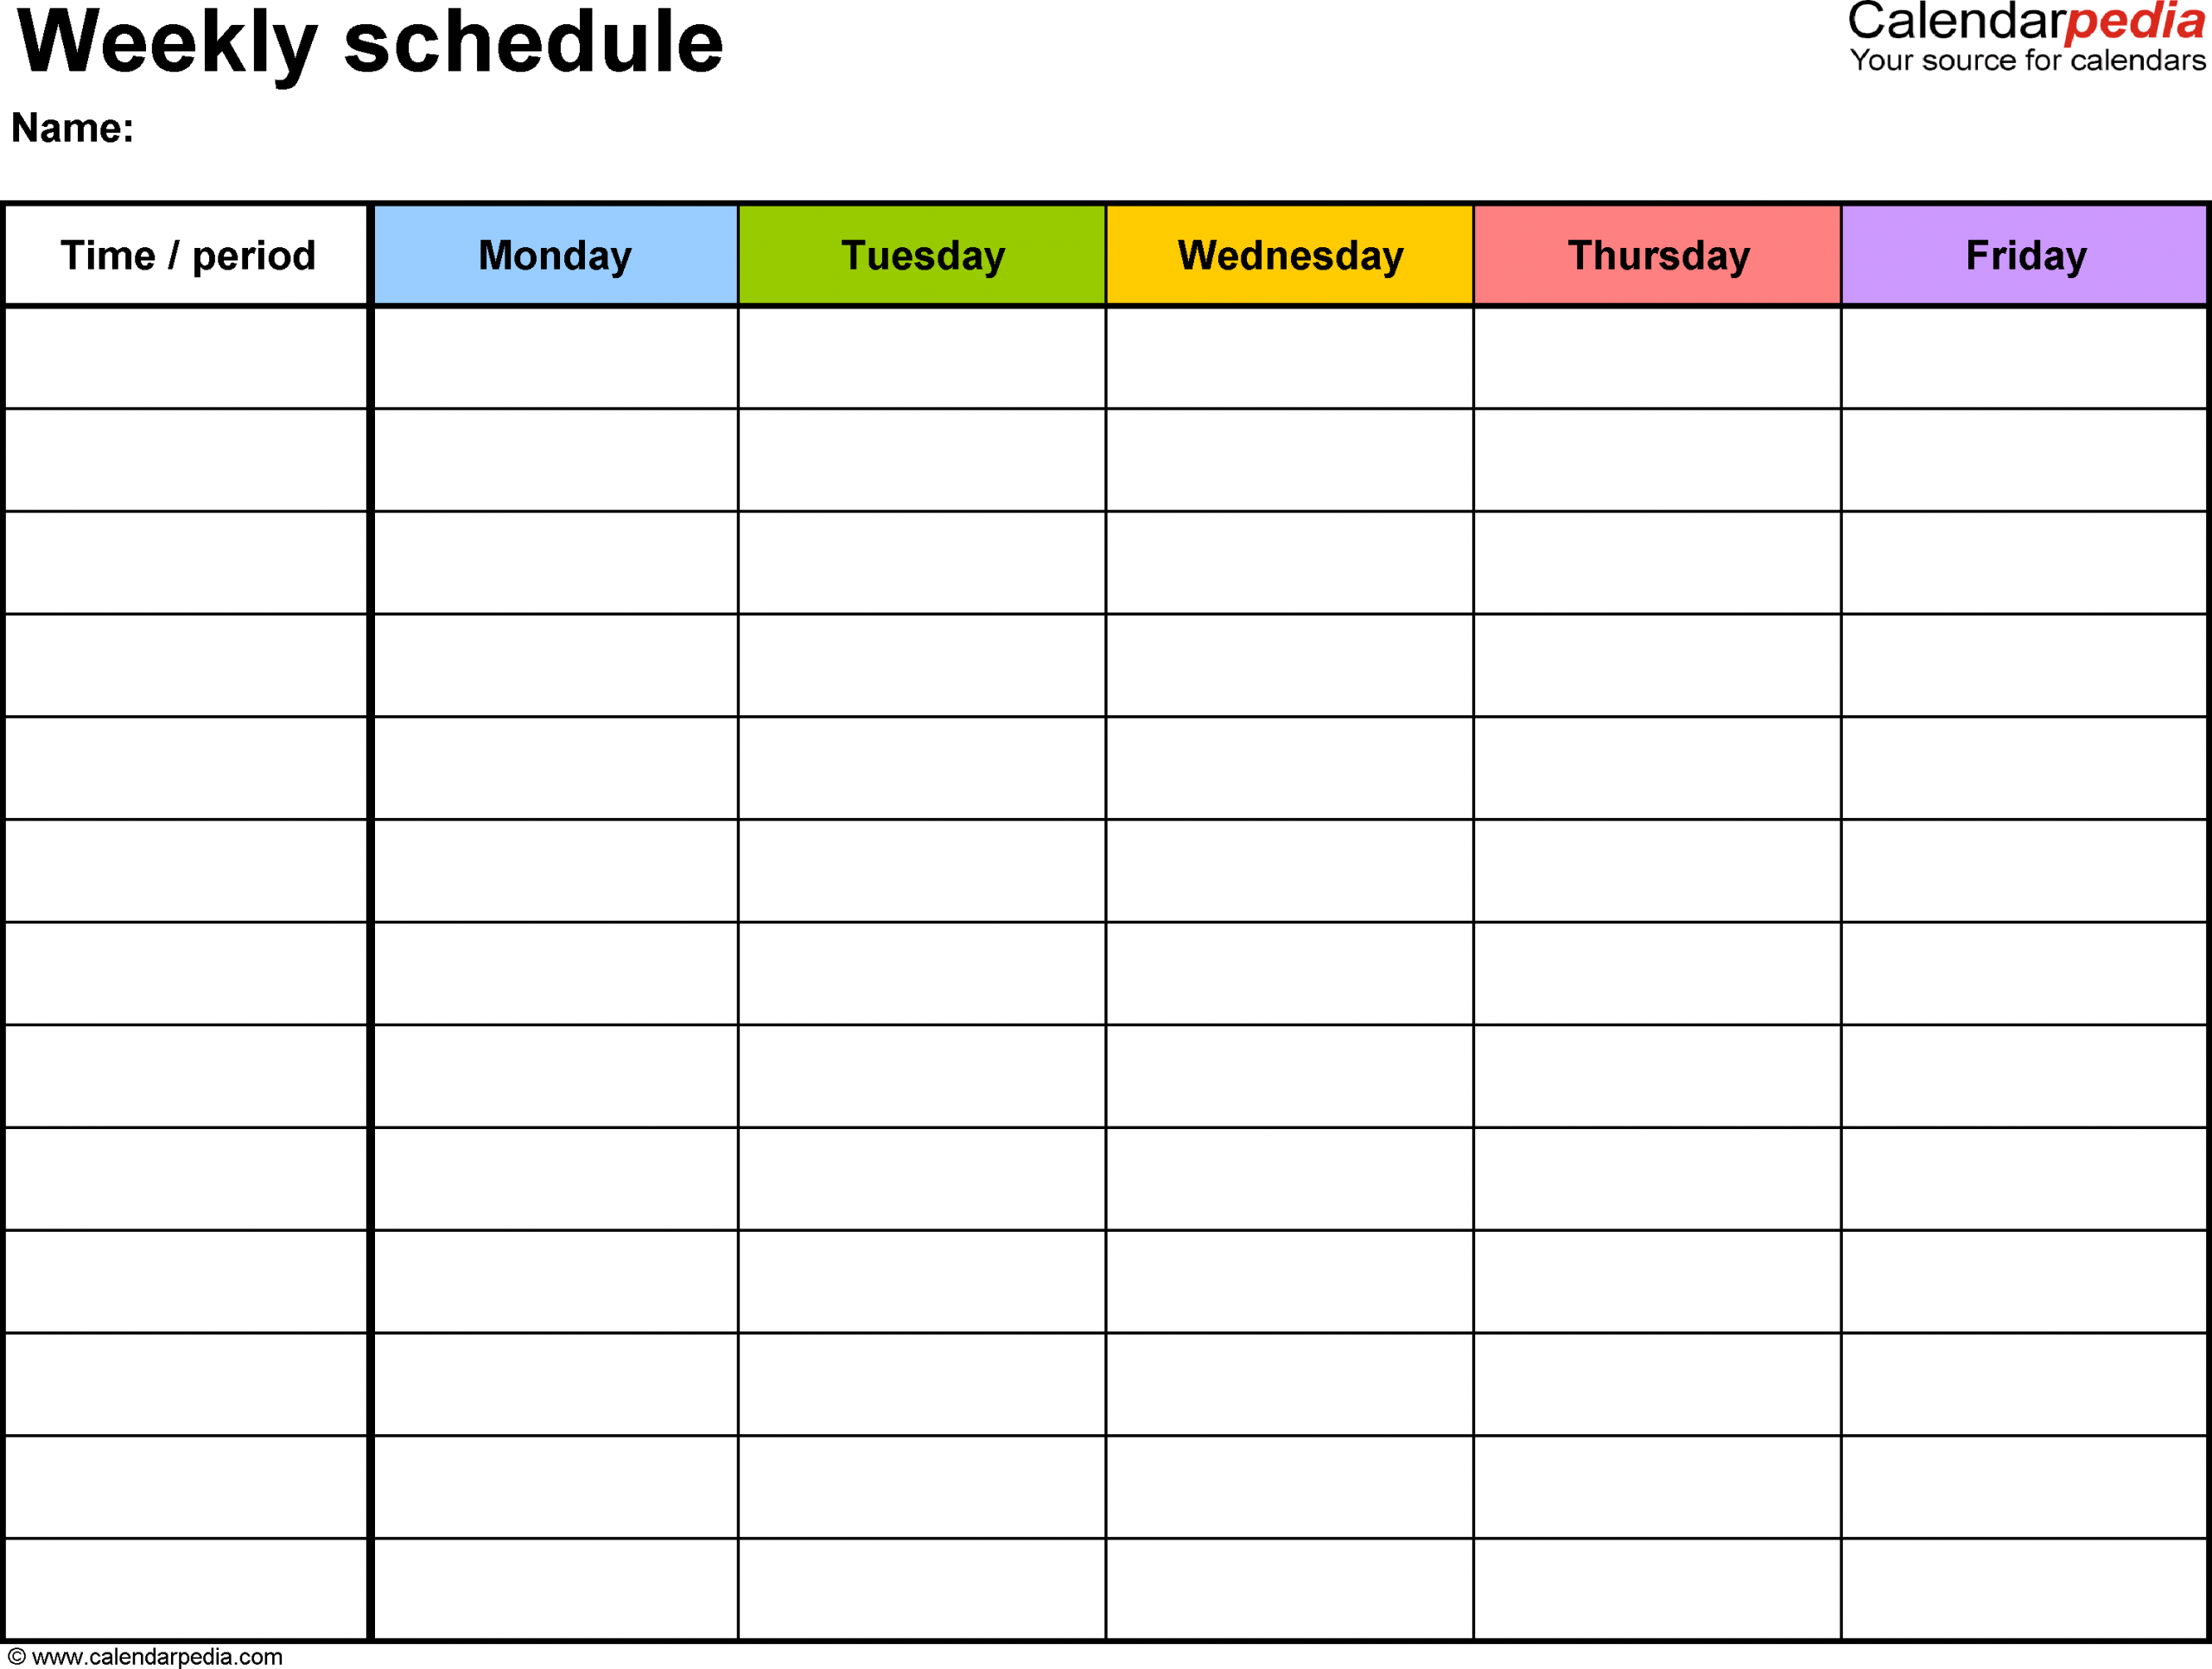 Weekly Calendar Template - Fotolip Blank Time Table For 7 Days